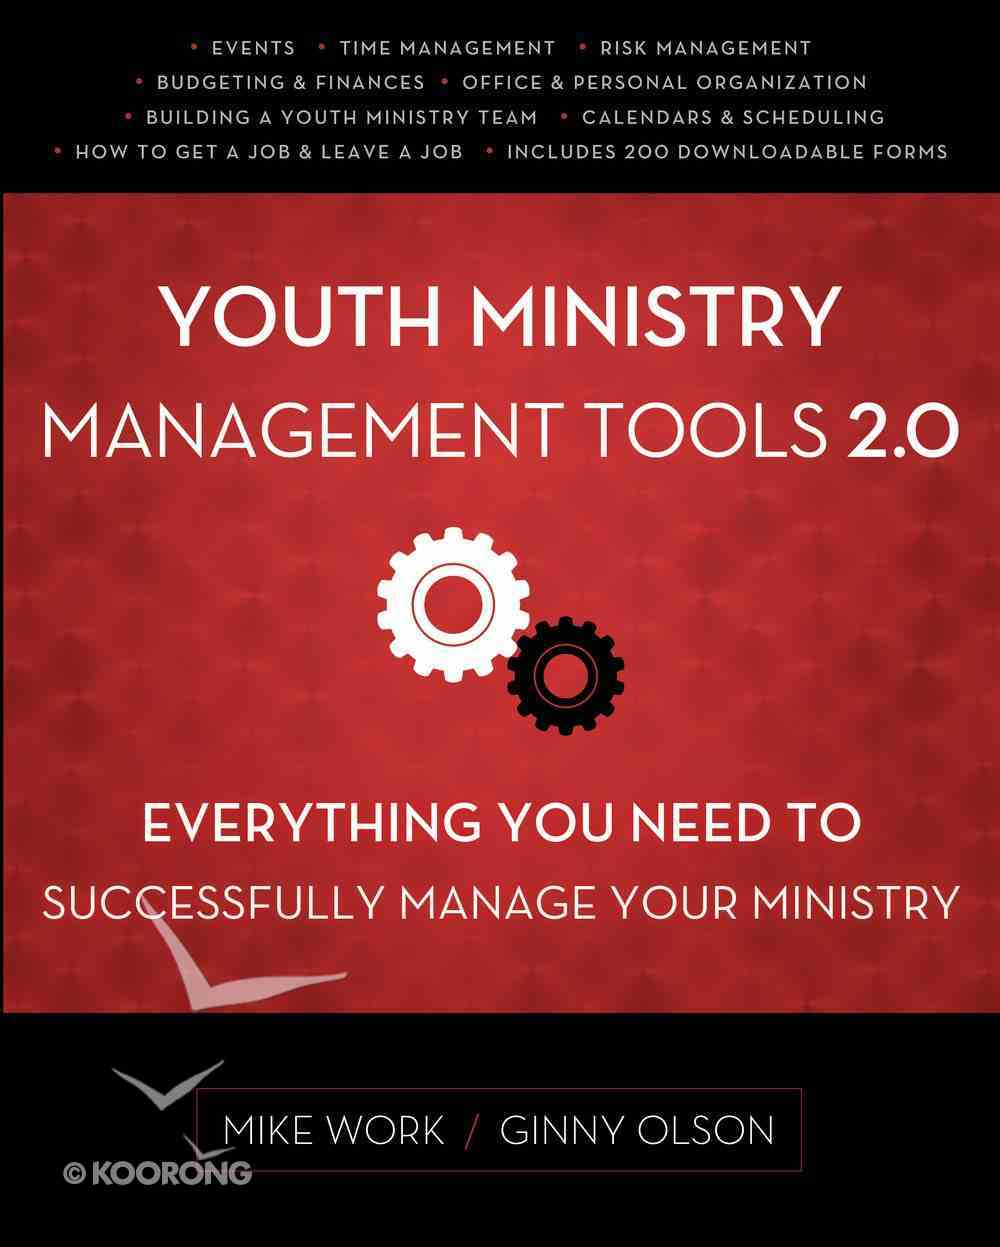 Youth Ministry Management Tools 2.0 eBook